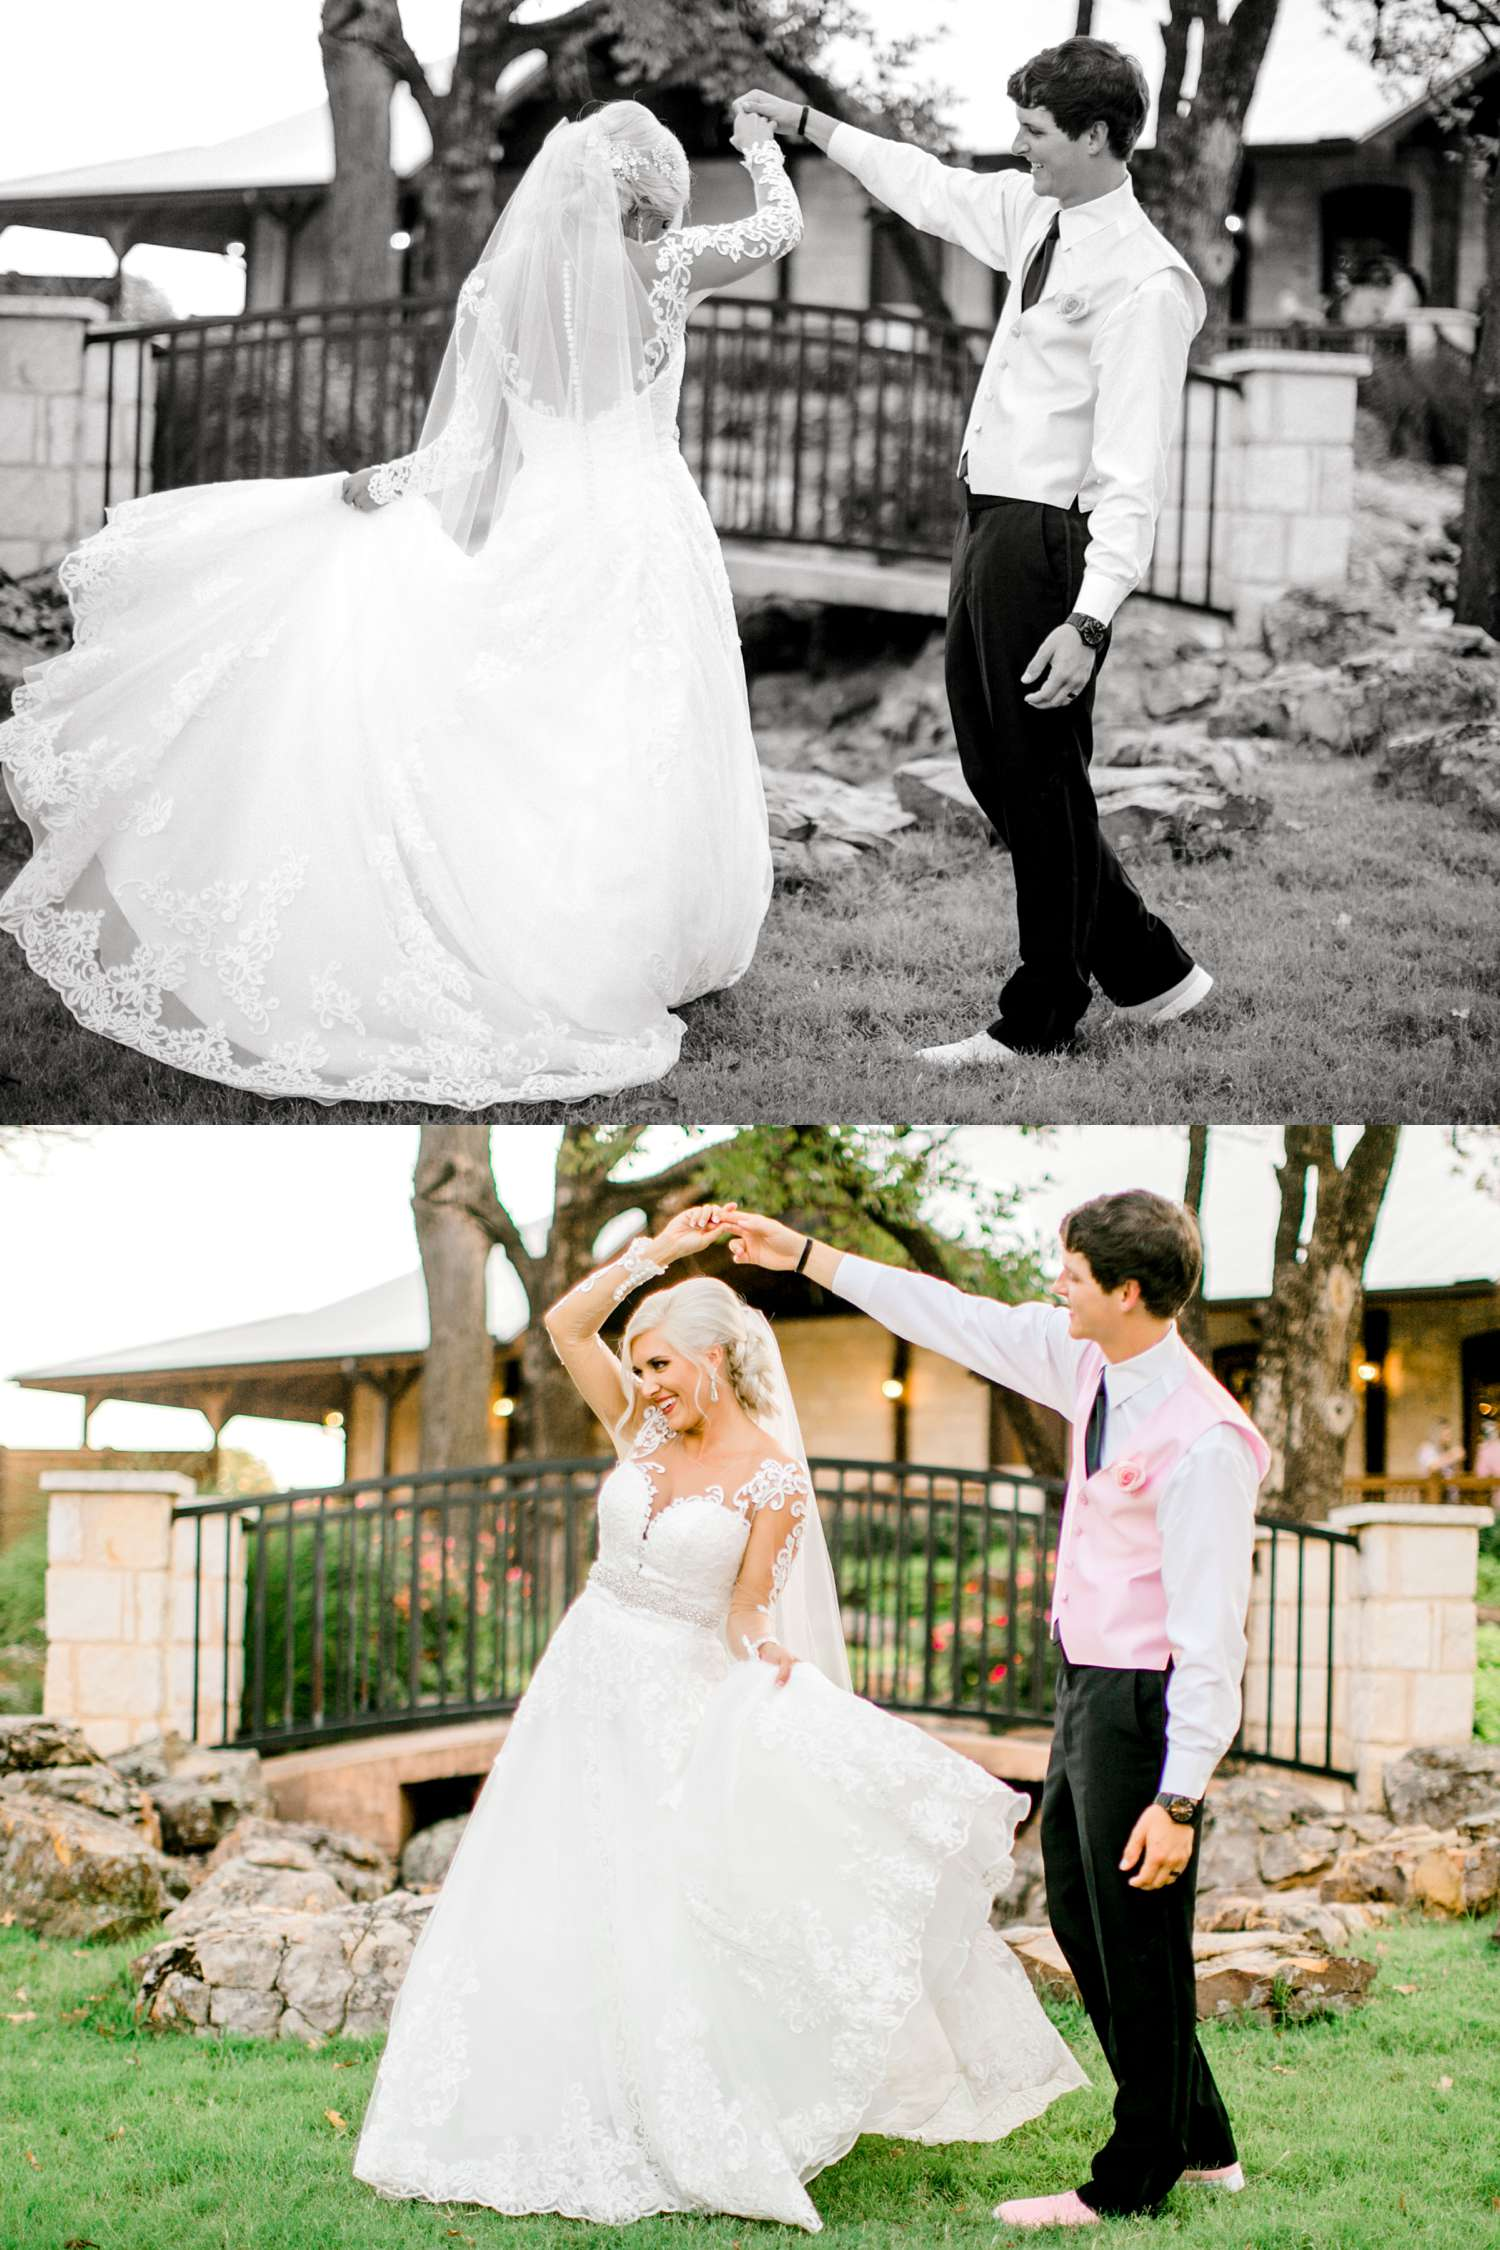 JESSICA+LYLE+NEEL+THE_SPRINGS_EVENTS_WEDDING_OKLAHOMA_ALLEEJ_PHOTOGRAPHER_0103.jpg